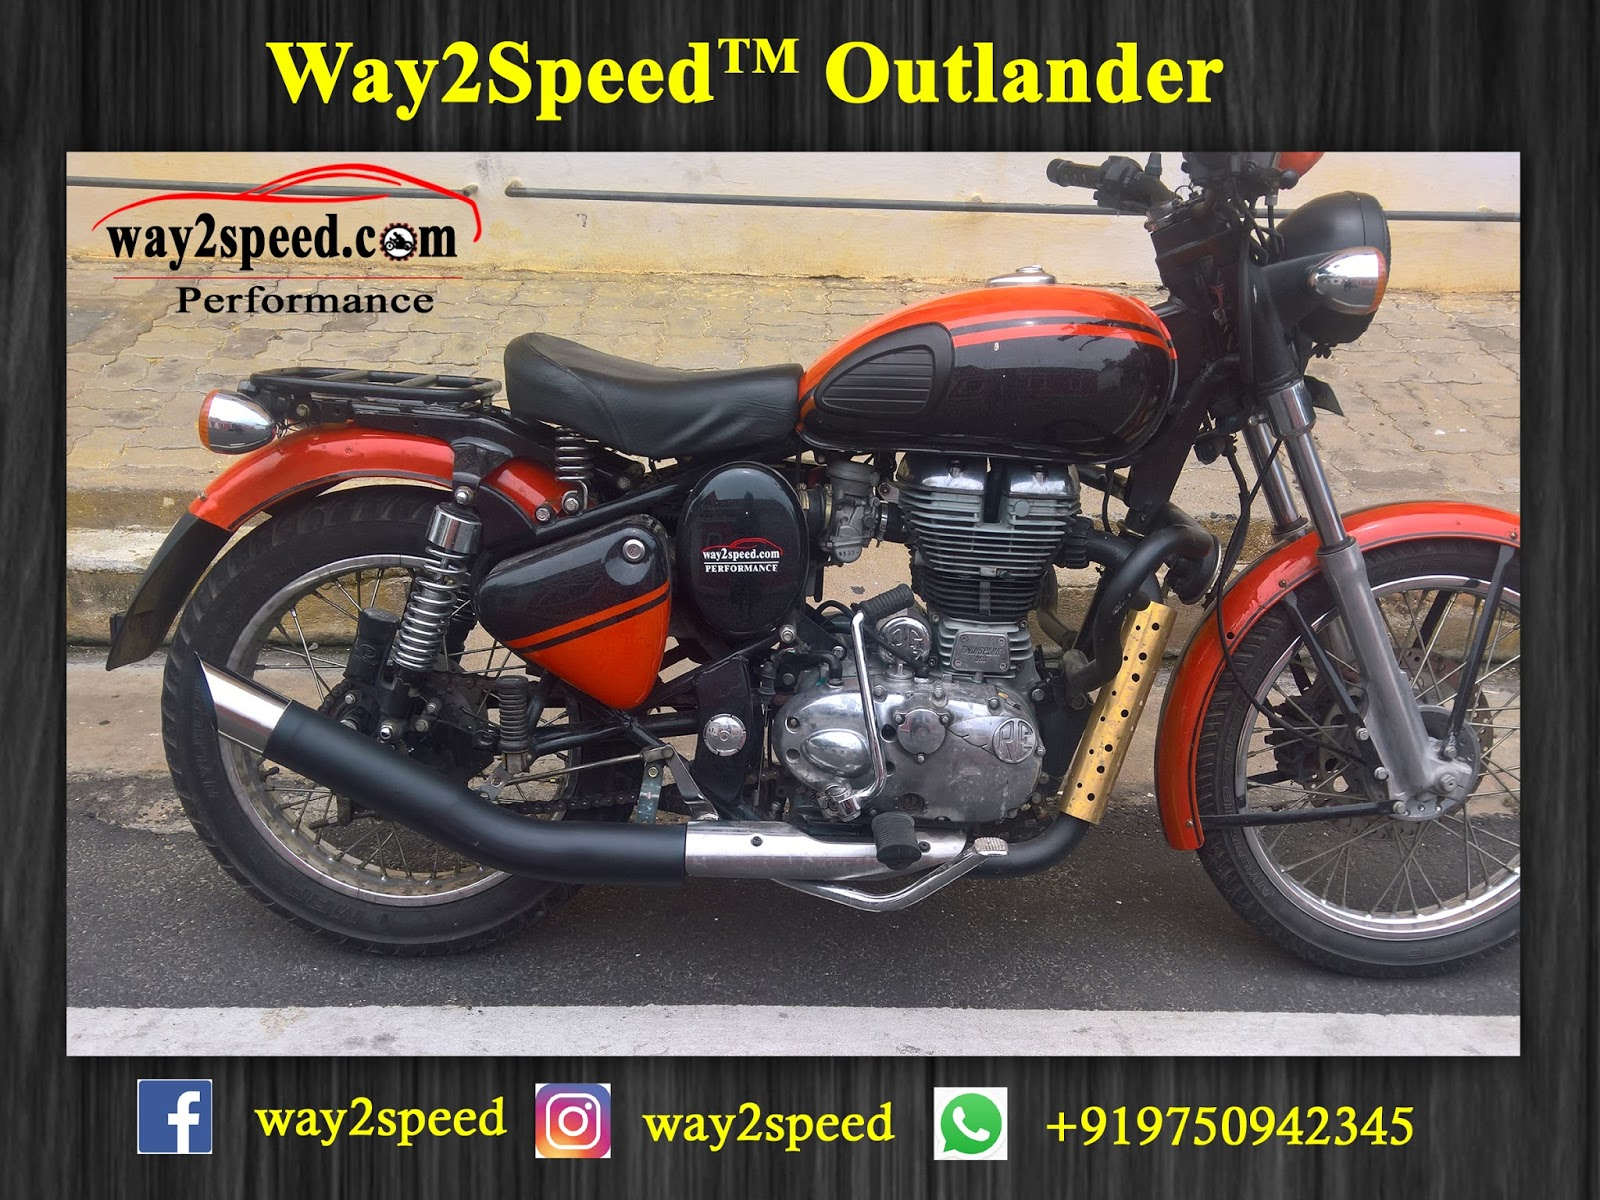 Royal Enfield Silencer | Way2speed Outlander | Royal Enfield exhaust | Best silencer for royal enfield | royal enfield classic 350 silencer sound | silencer for classic 350 | royal enfield glass wool silencer (ceramic wool) | silencer for bullet | Bullet silencer | Bullet silencer sound increase